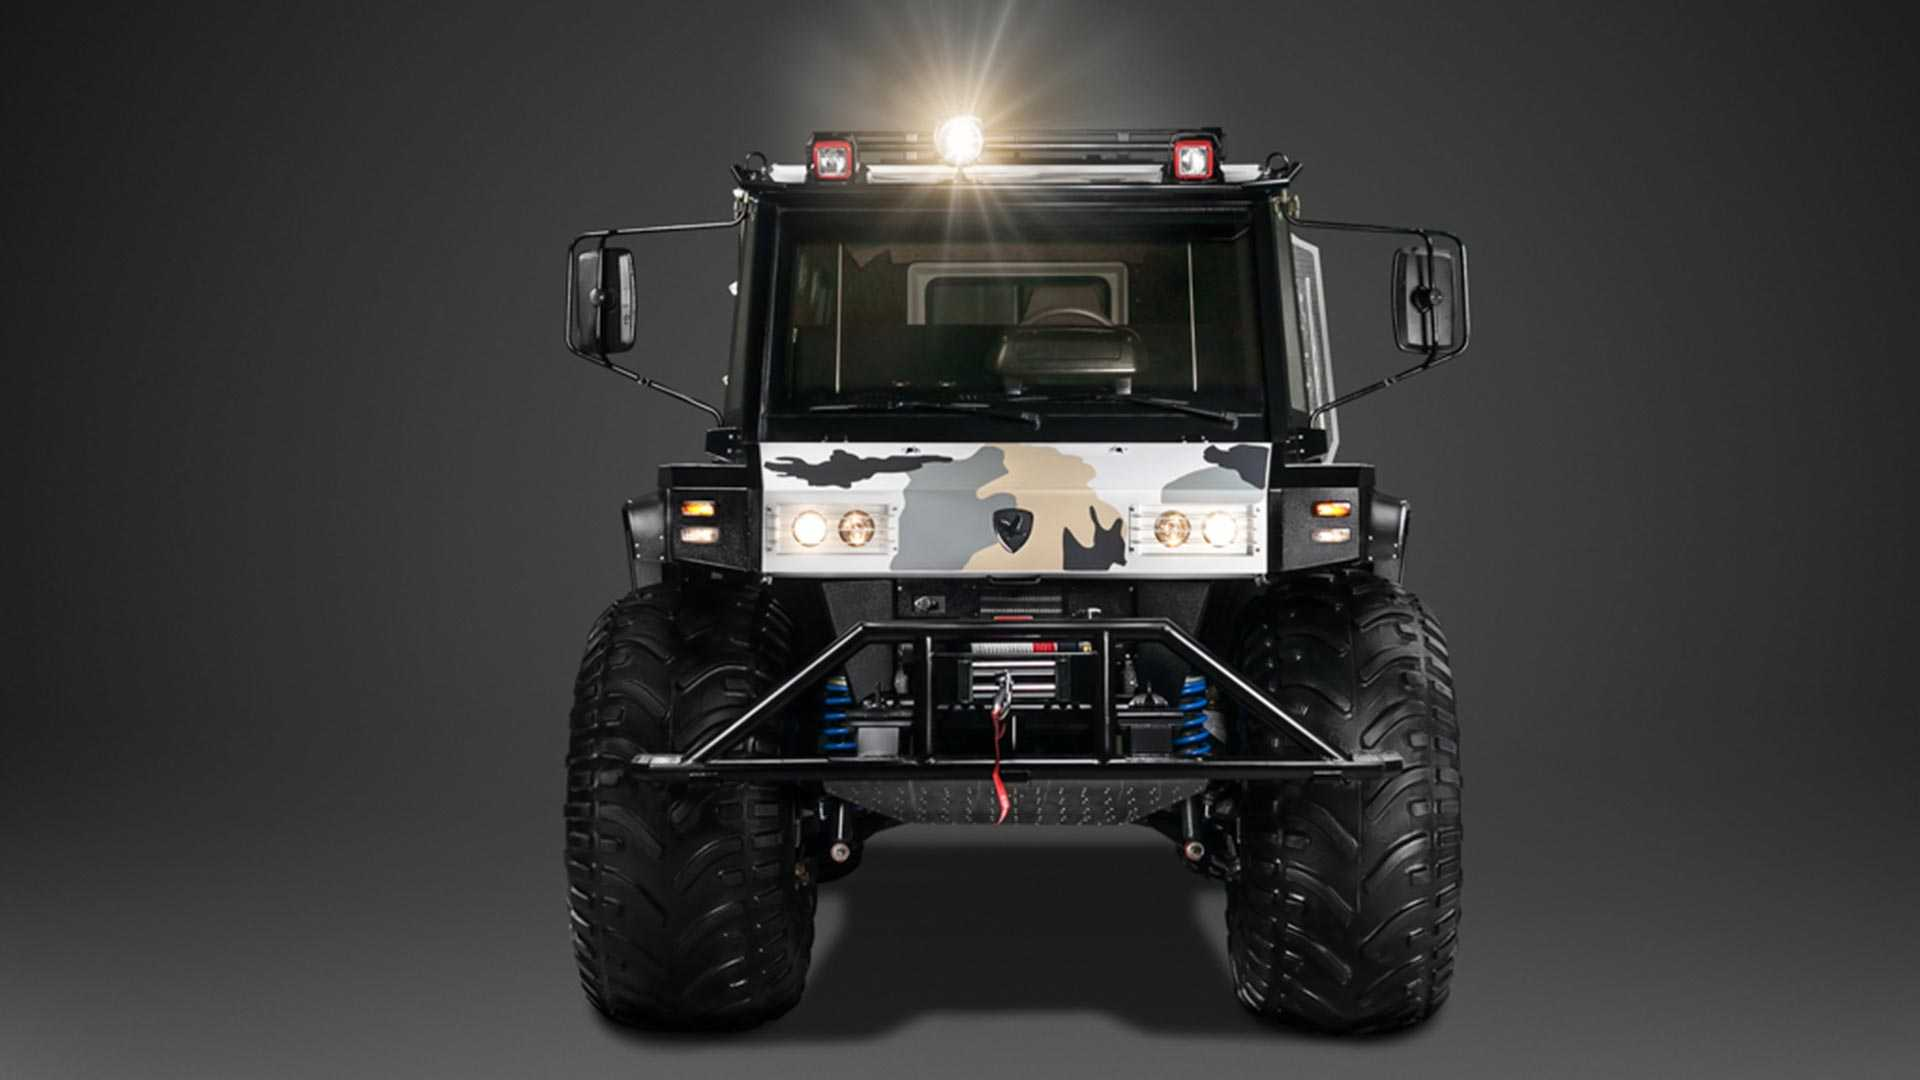 Technoimpulse Rocket Z – Off-road vozilo sa središnje smještenim motorom